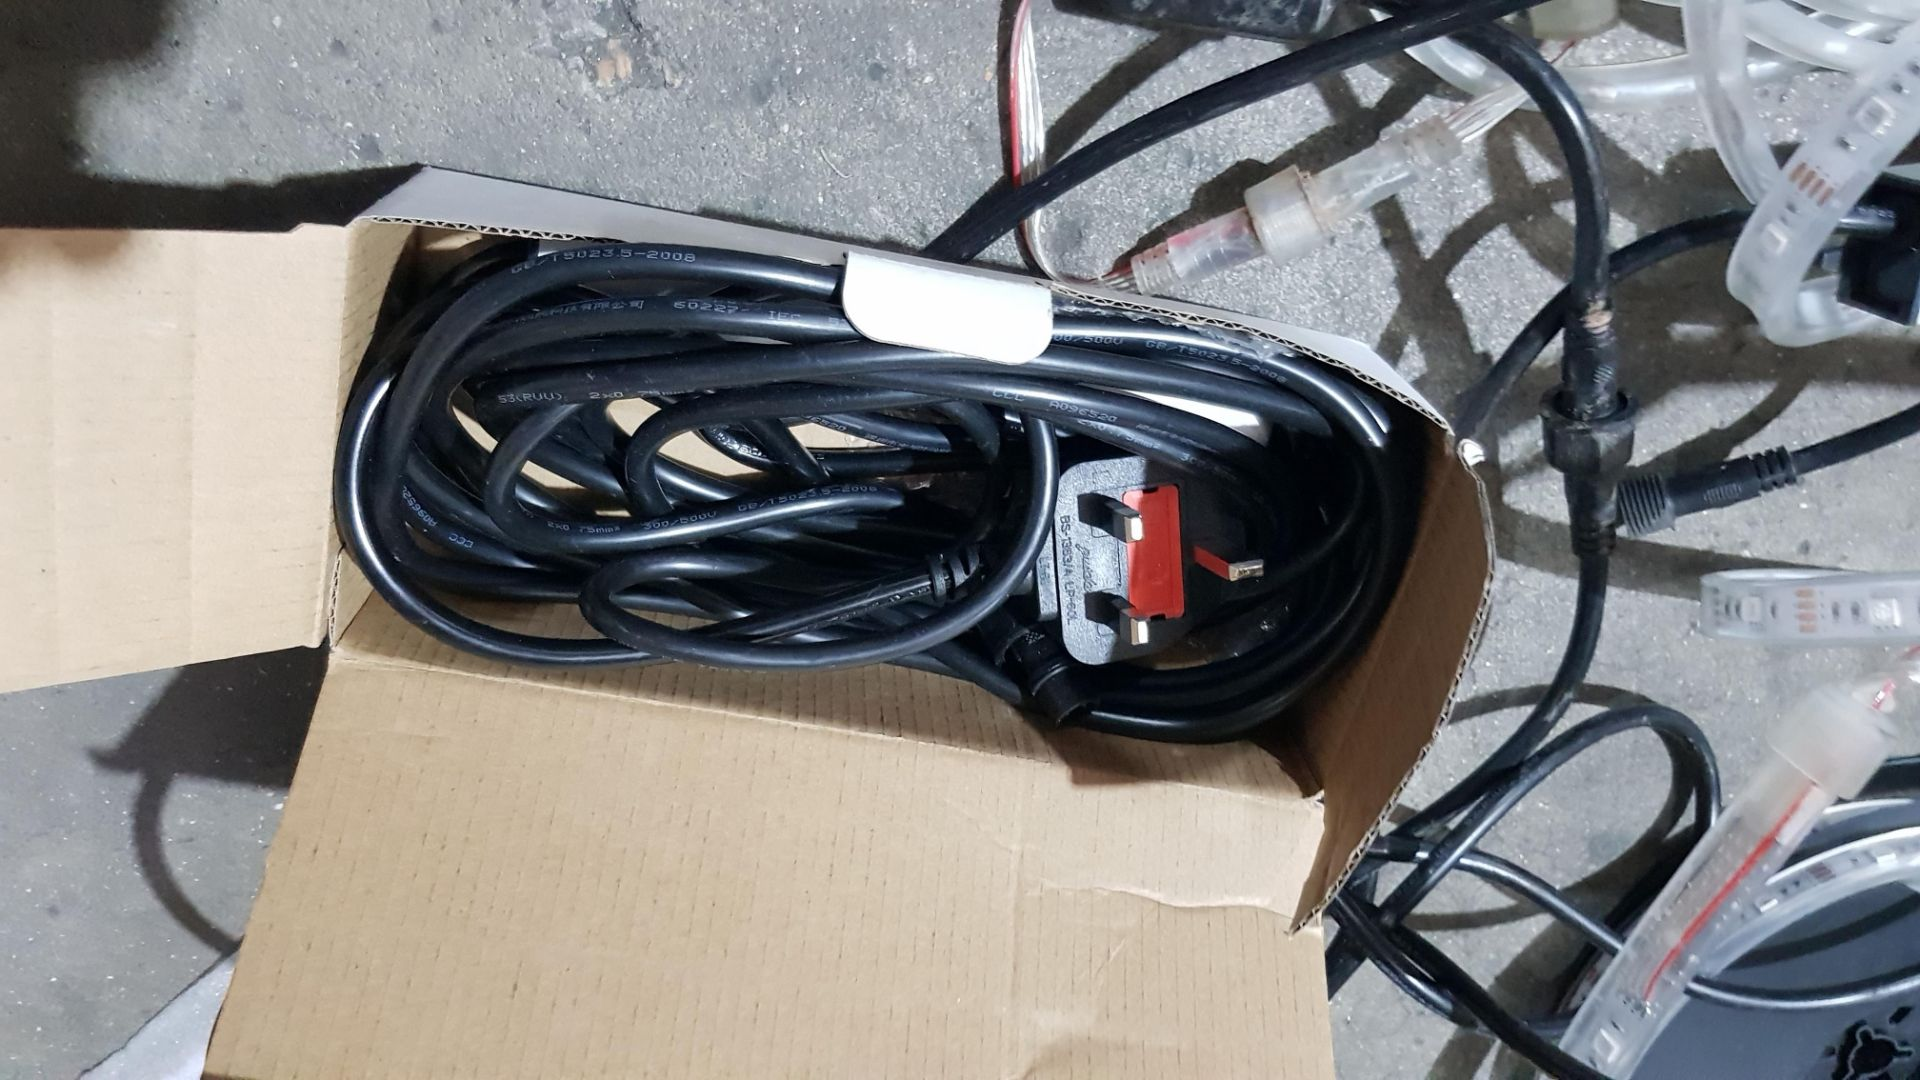 (3F) Fibre Optic / LED Lighting Lot. To Include 1x Optic Lighting InFloor Fibre Optic Lighting Kit. - Image 11 of 12